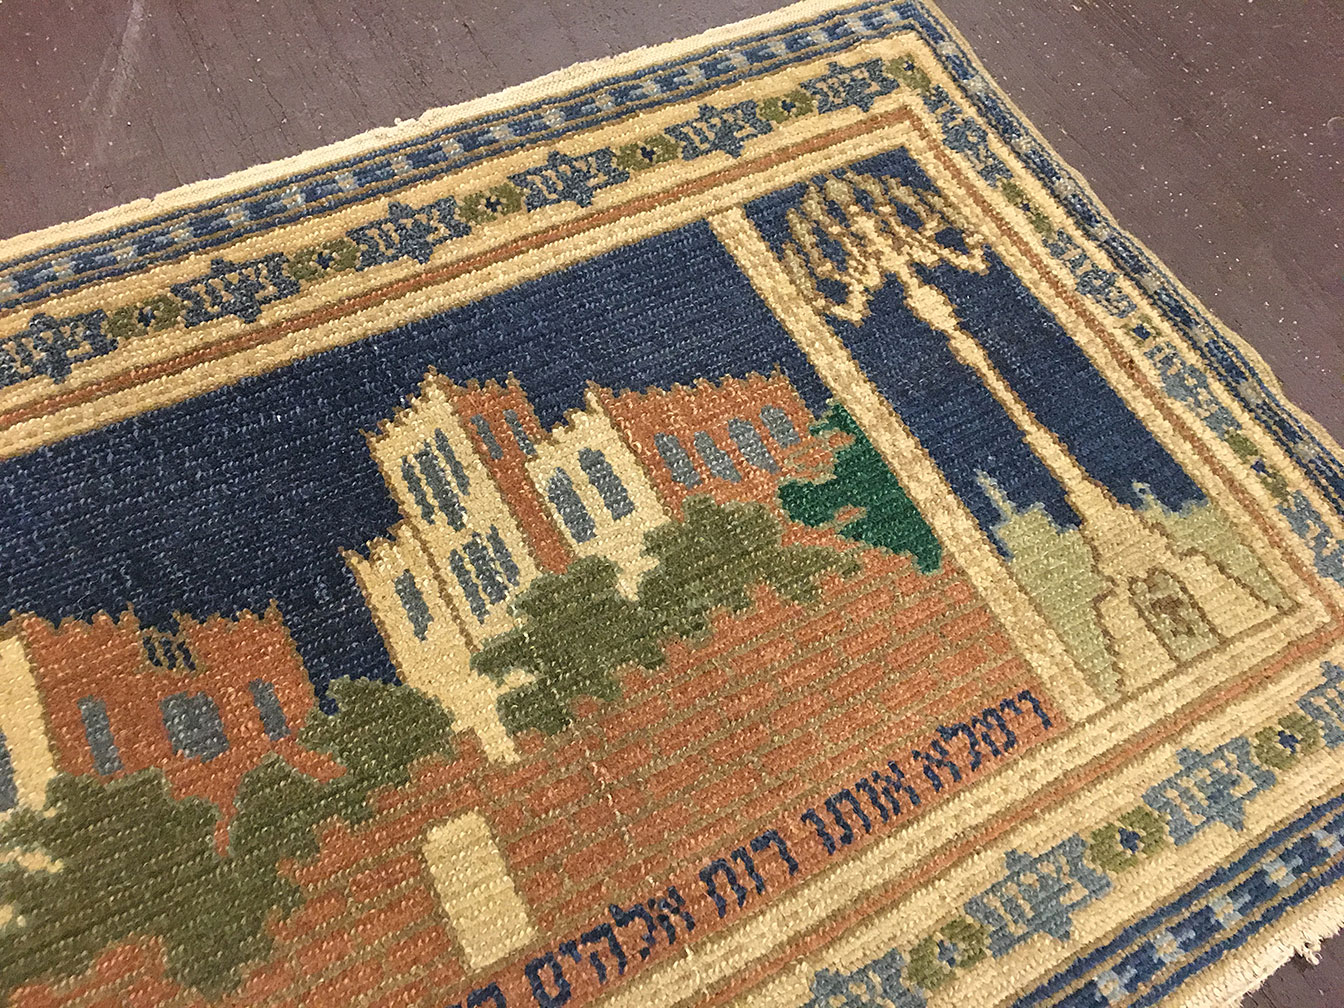 Antique bezalel Rug - # 52647